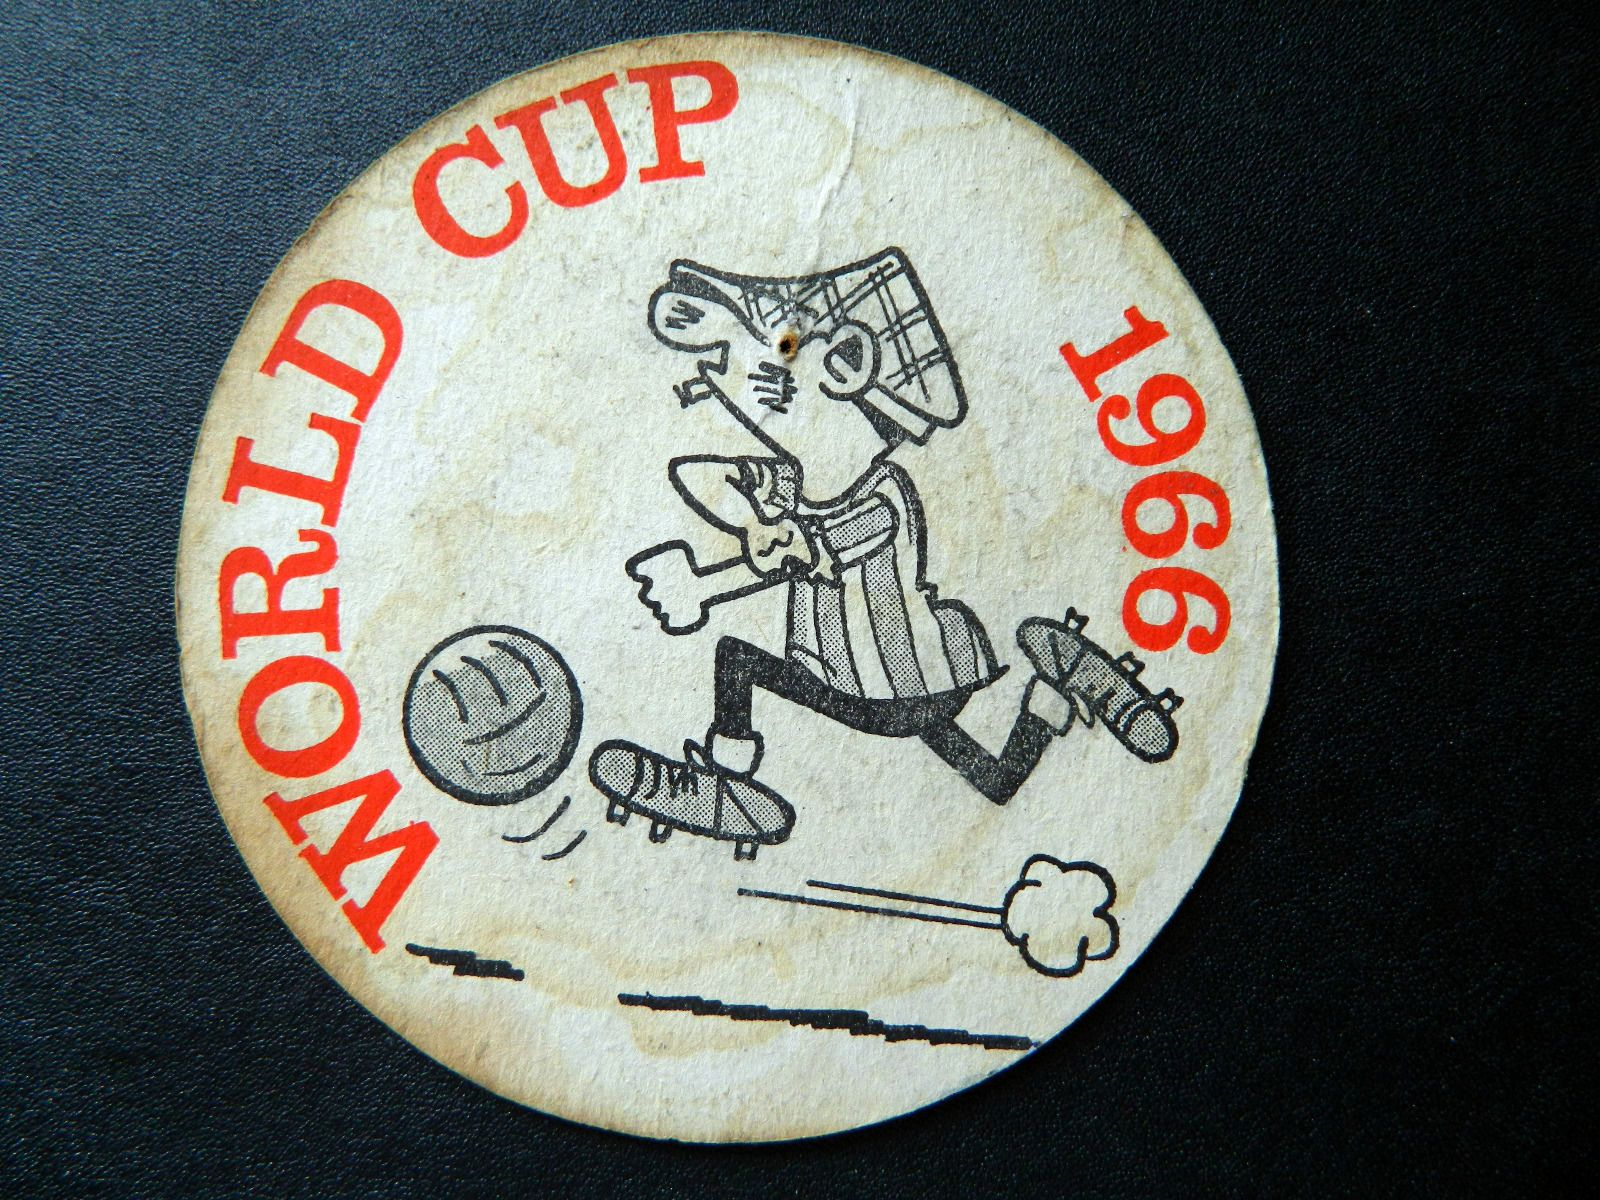 World Cup 1966 Beermat Andy Capp. Produced by Daily